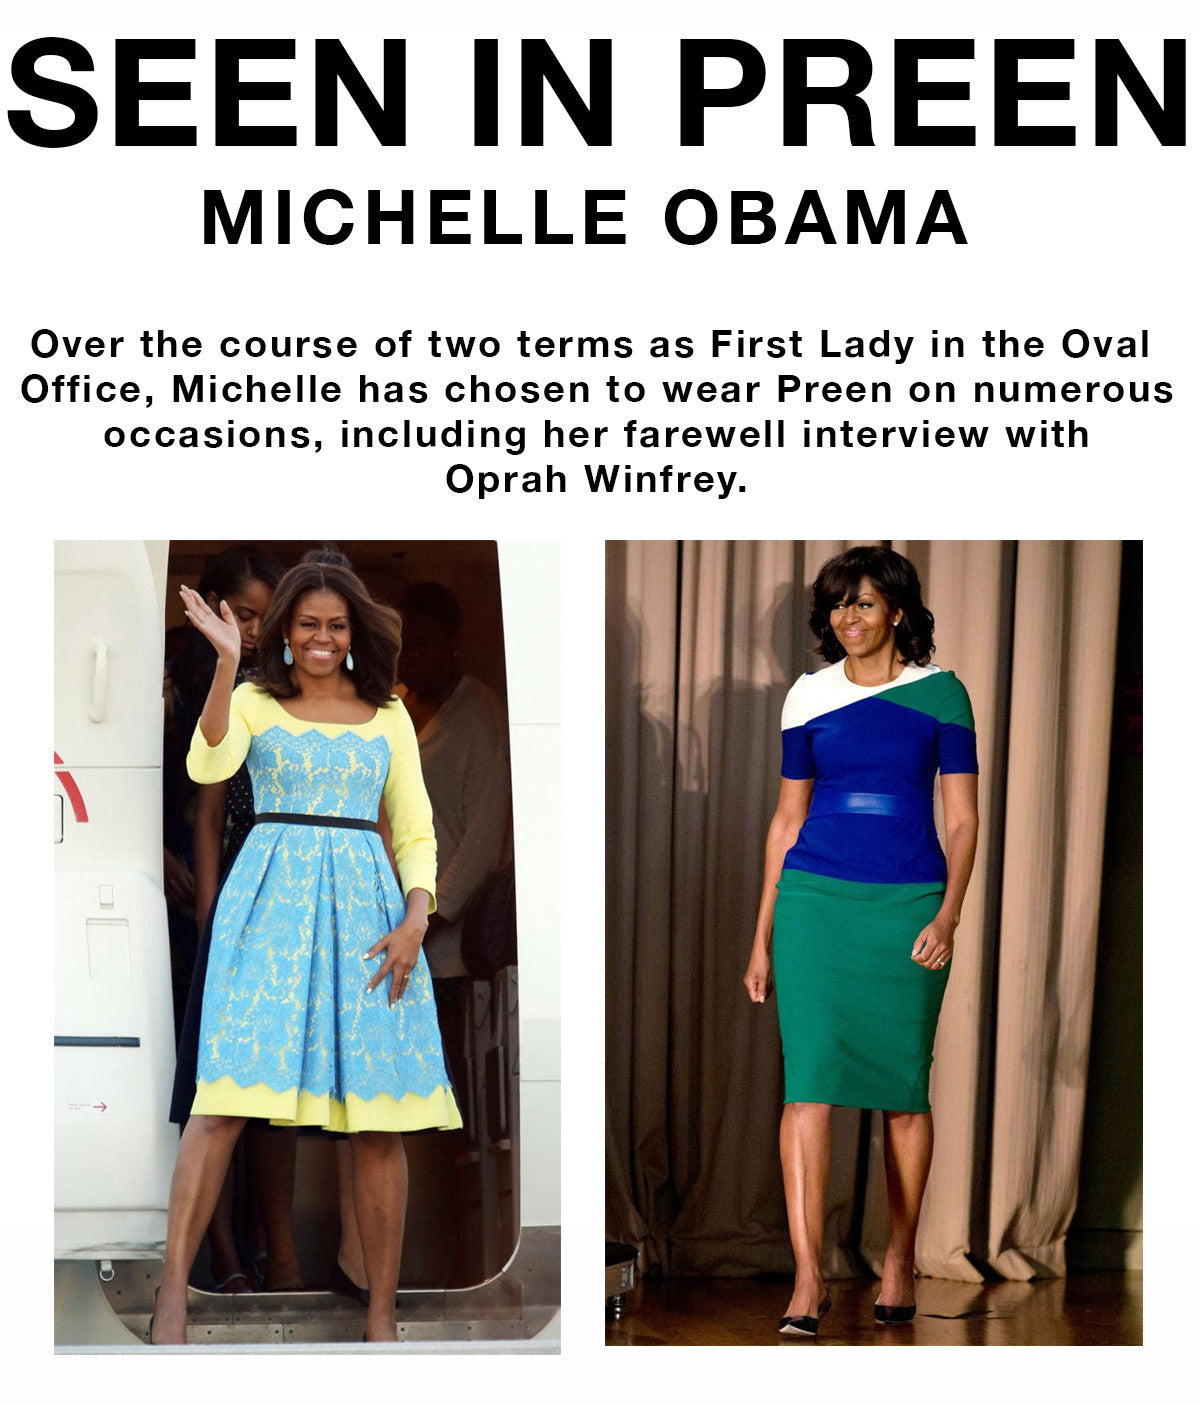 Michelle Obama seen in Preen